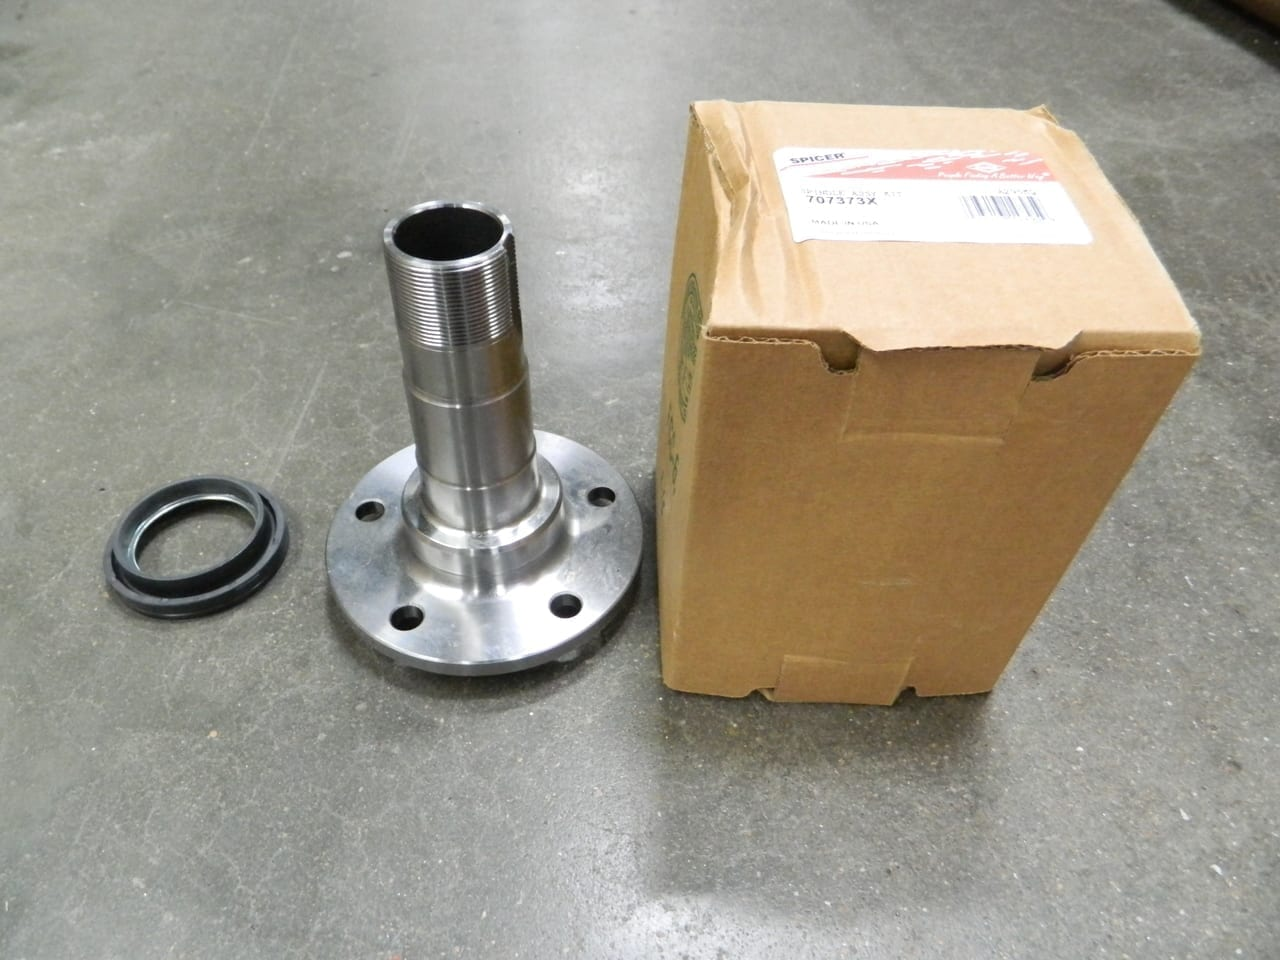 Ford F150 Bronco Dana 44 Spindle 4X4 Front Axle 1993-1996